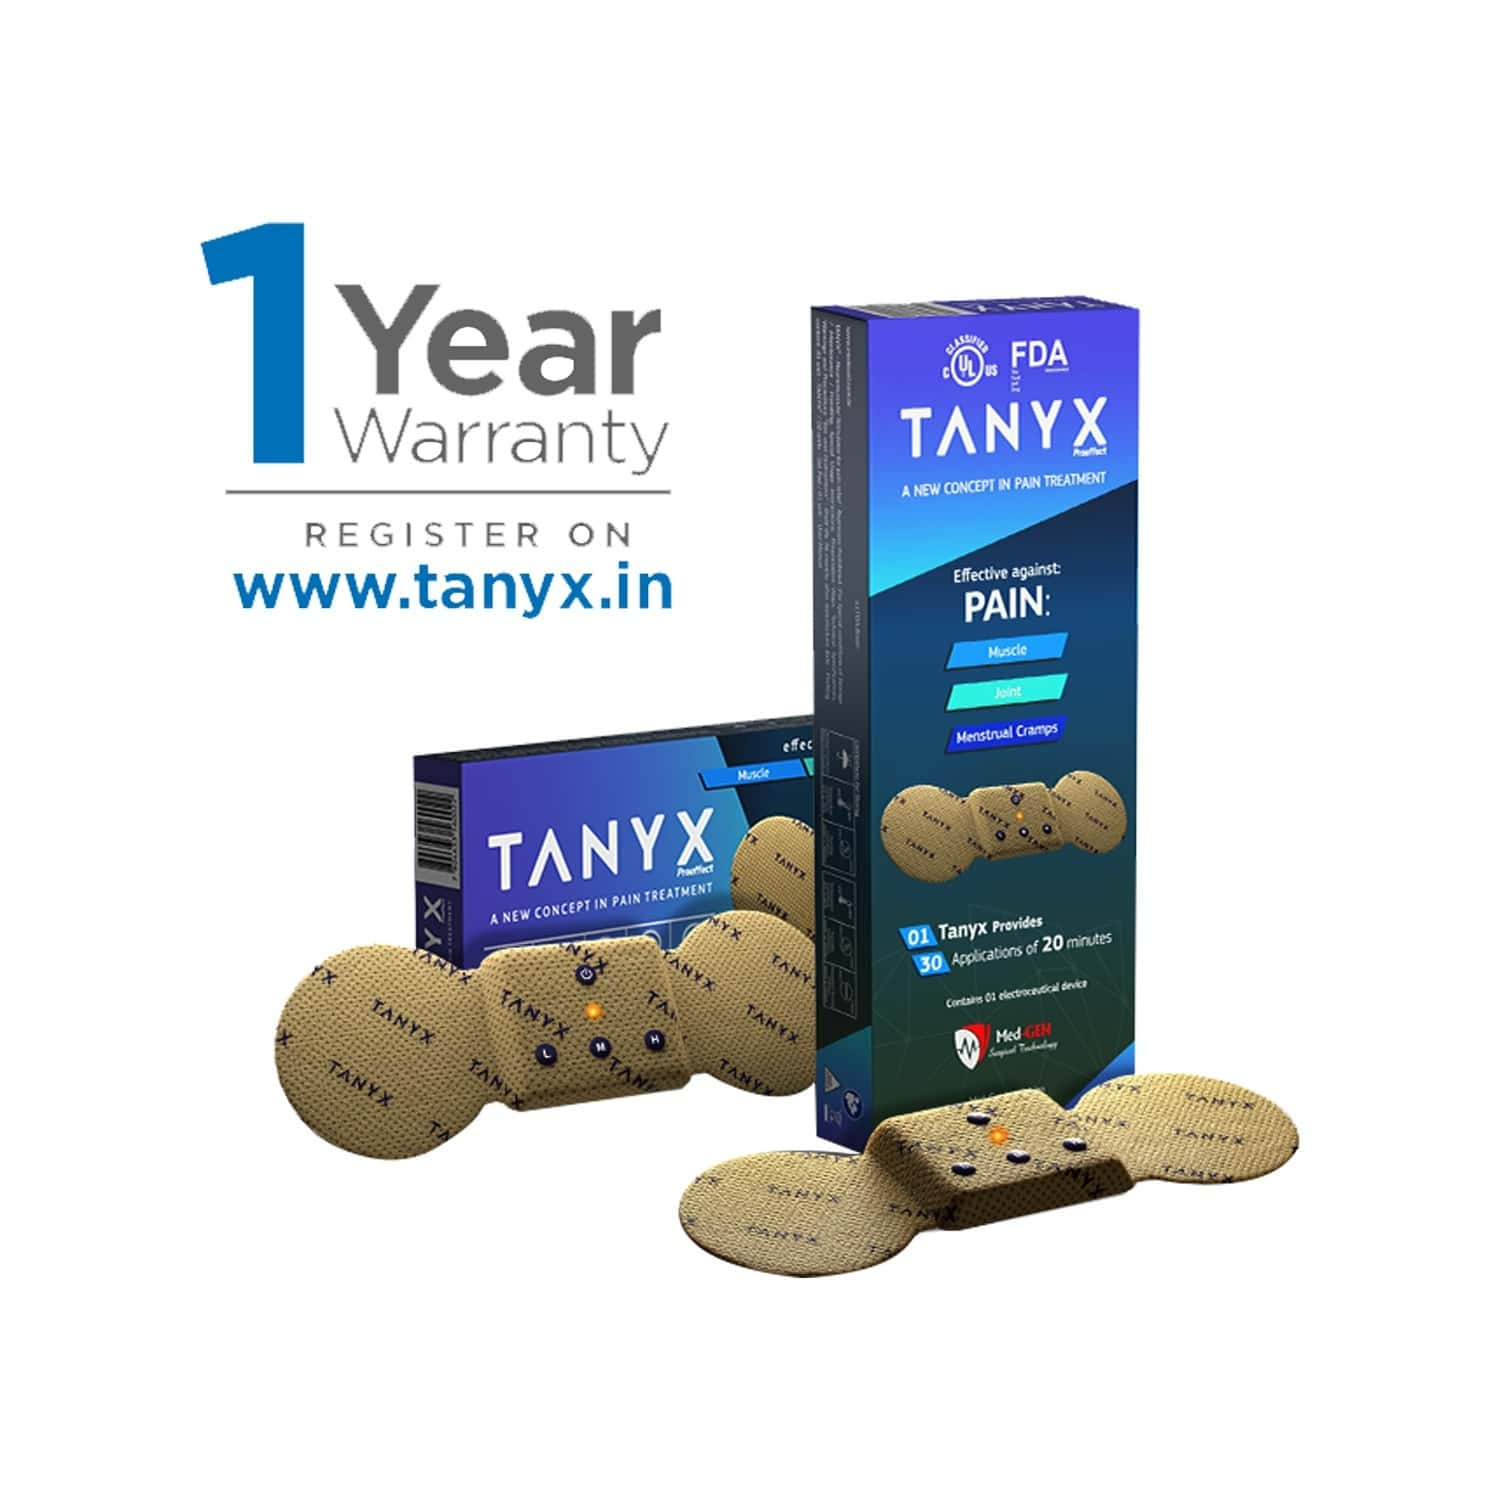 Tanyx Proeffect Pain Relief Device